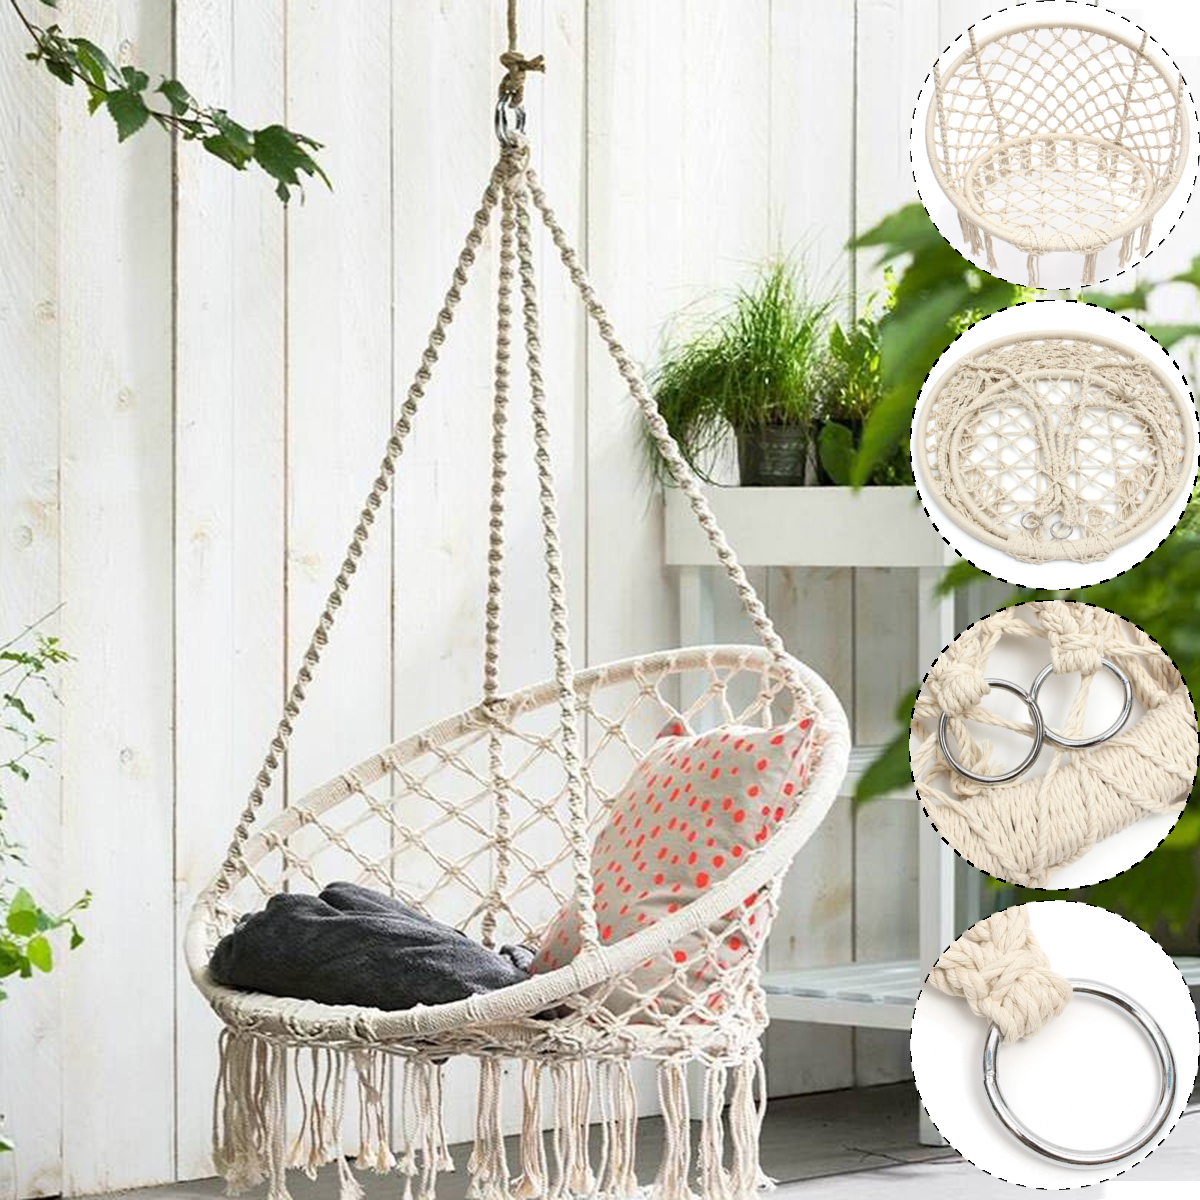 Rope Hammock Chair Swing-Bed Outdoor Adult Nordic Kids Cotton Knitted Handmade title=